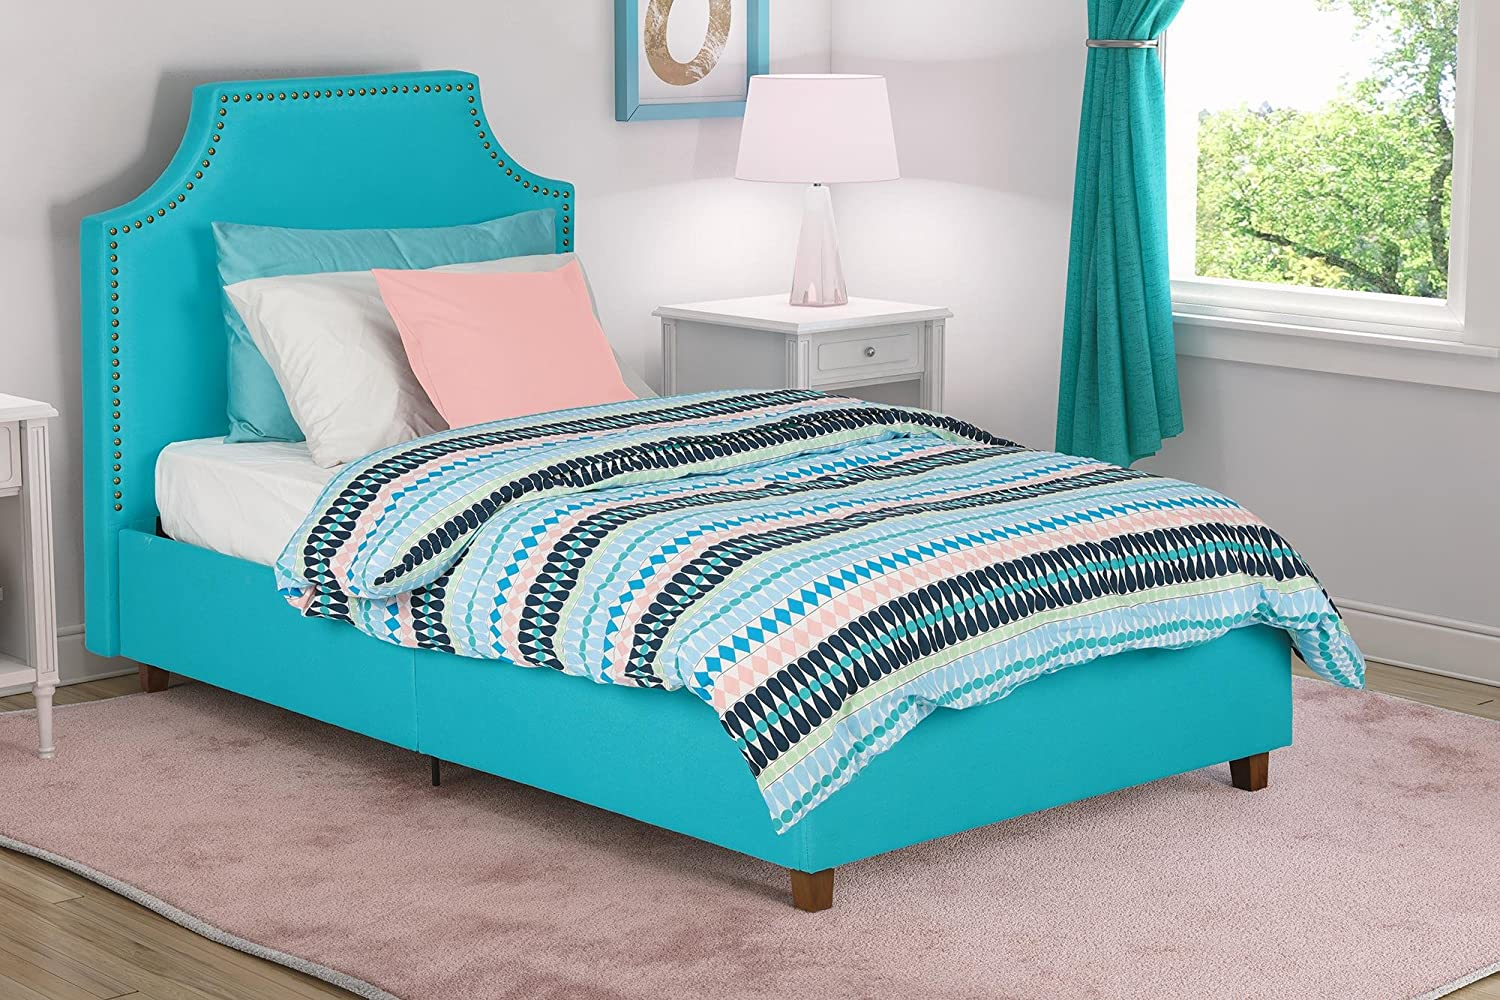 Amazon com  DHP Melita Linen Upholstered Bed with Beautiful Headboard  Design  Twin Size   Teal  Kitchen   Dining. Amazon com  DHP Melita Linen Upholstered Bed with Beautiful